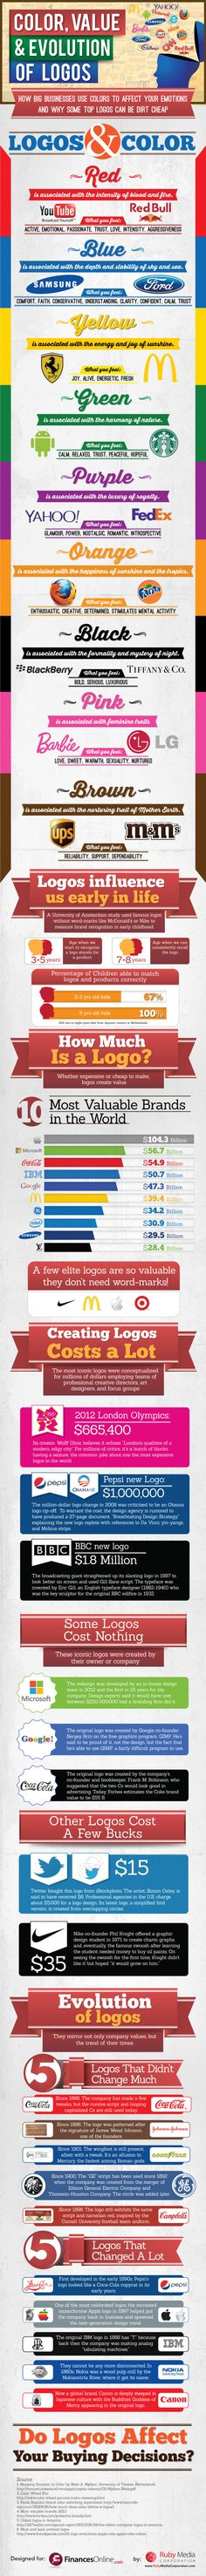 What The Color of Your Logo Says About Your Business | Infographic